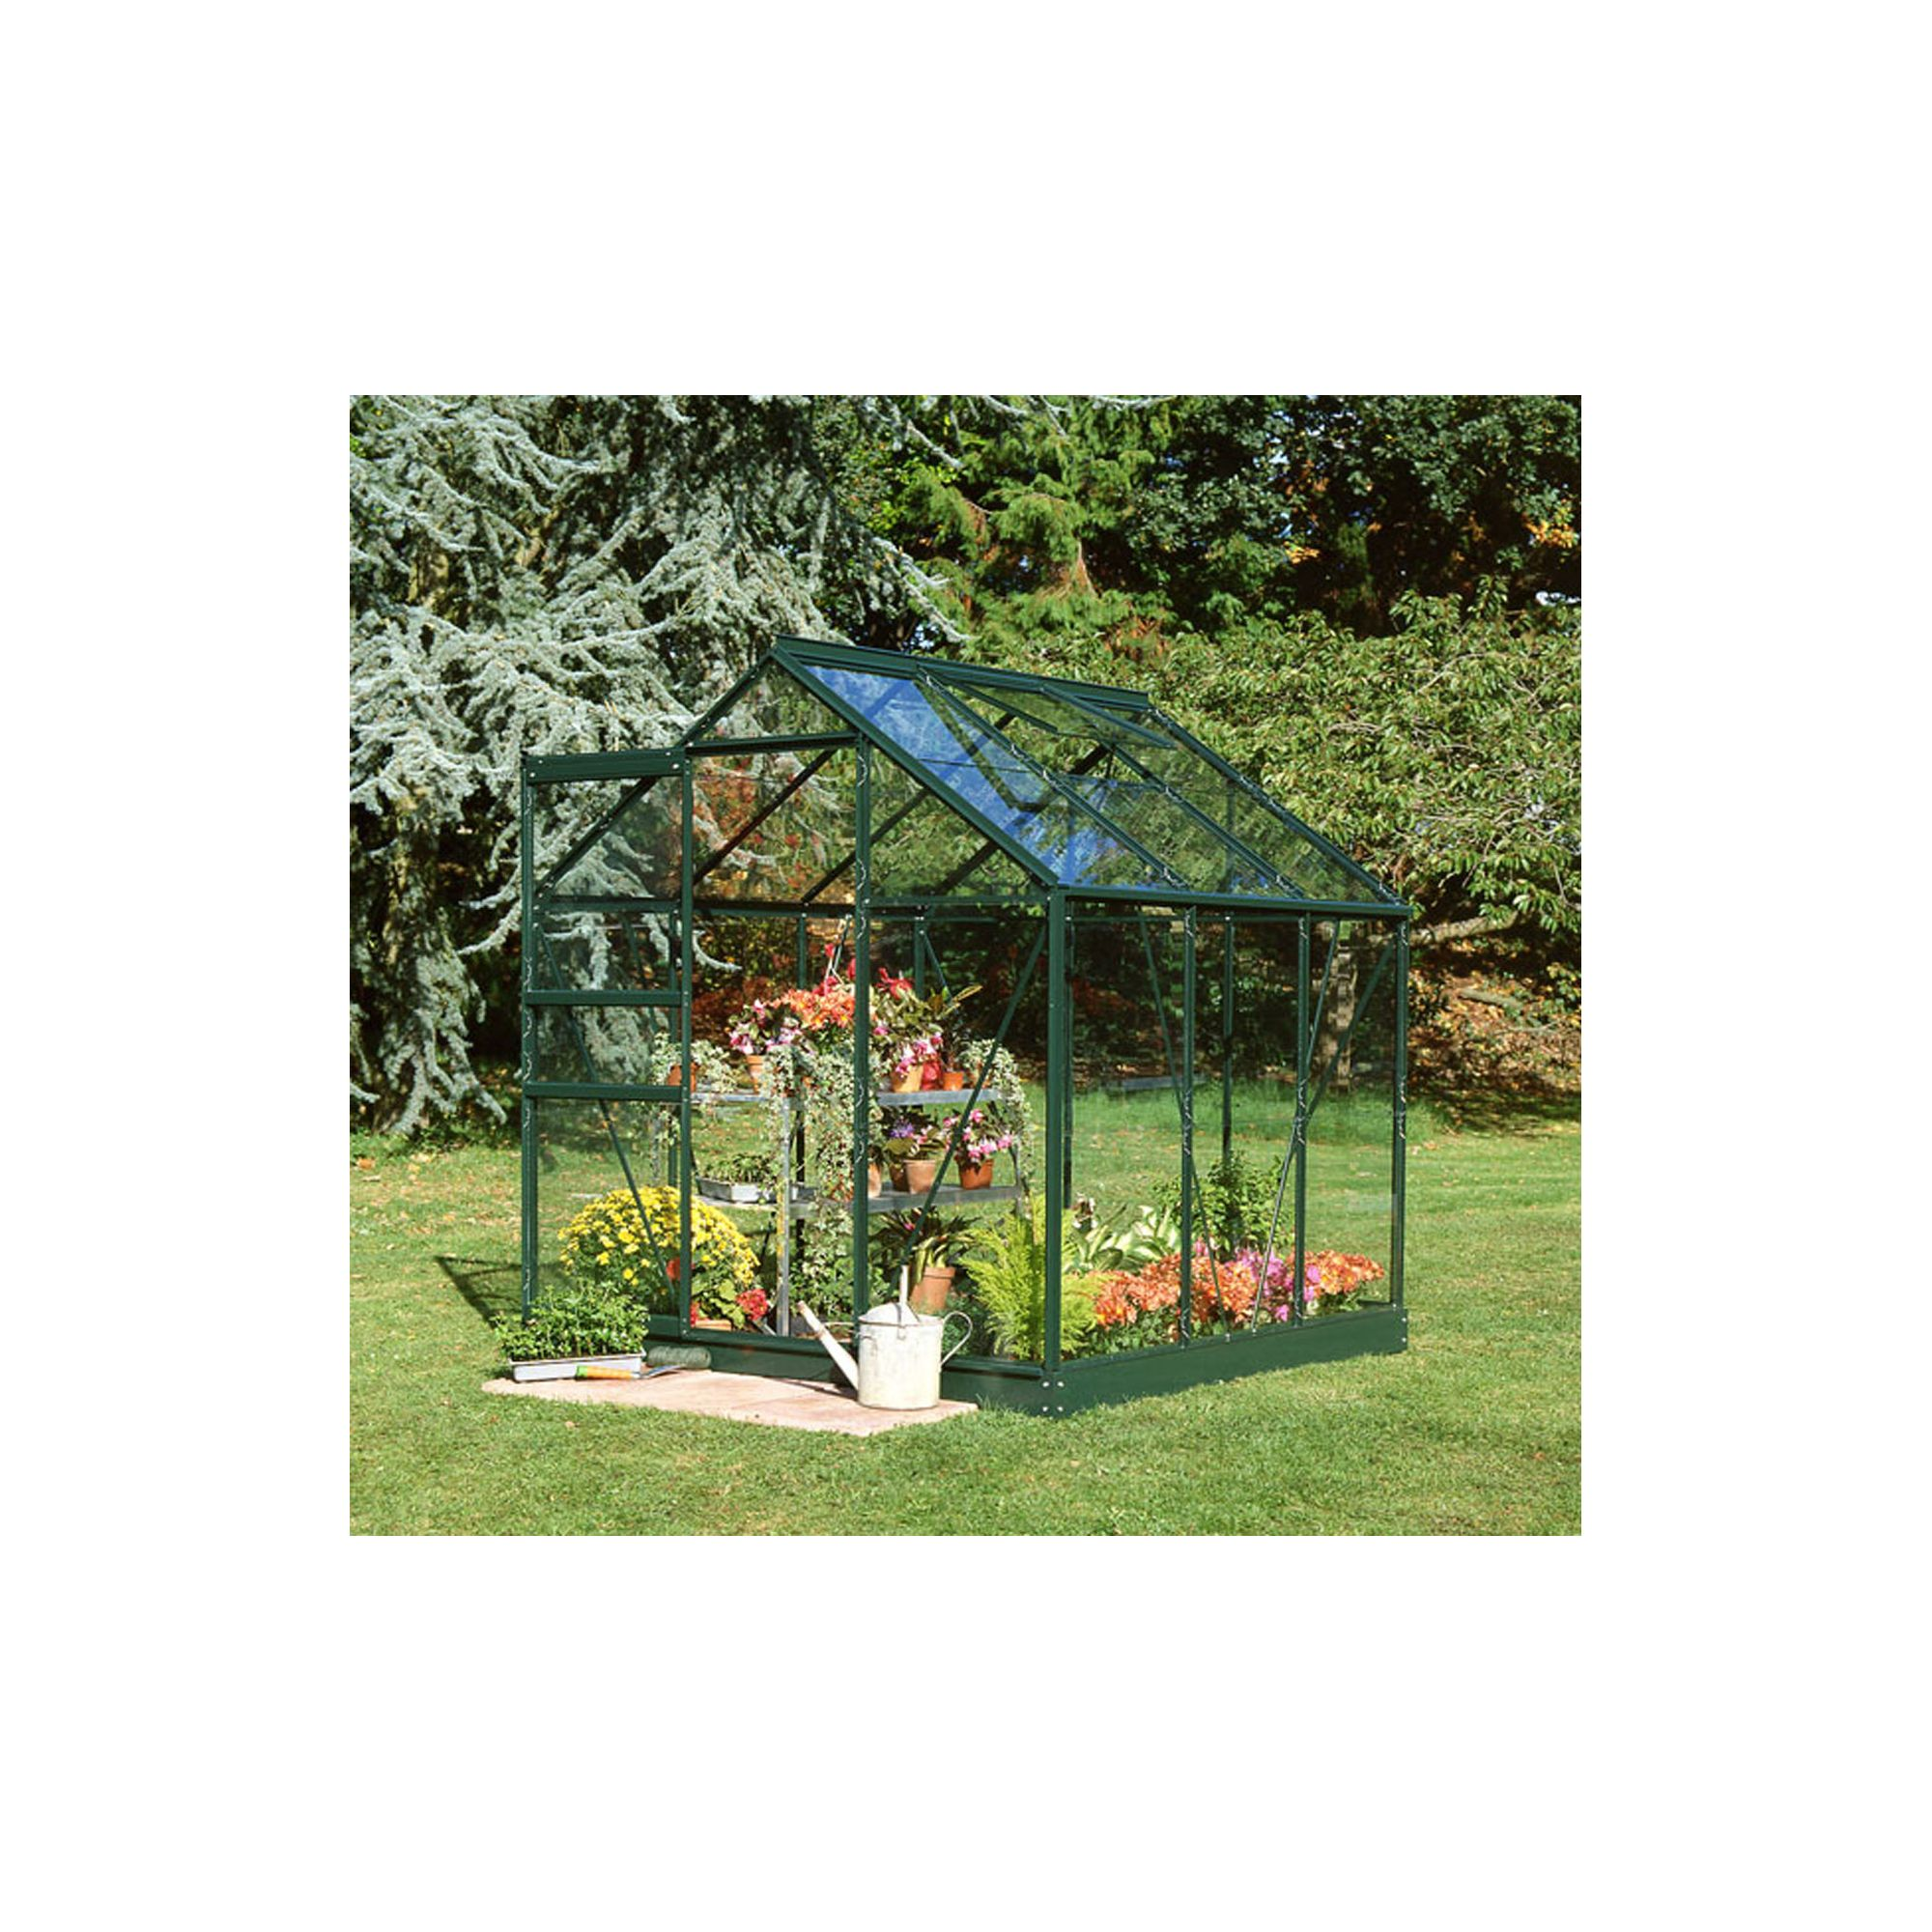 Halls 6x6 Popular Greenframe Greenhouse + Base - Toughened Glass at Tescos Direct